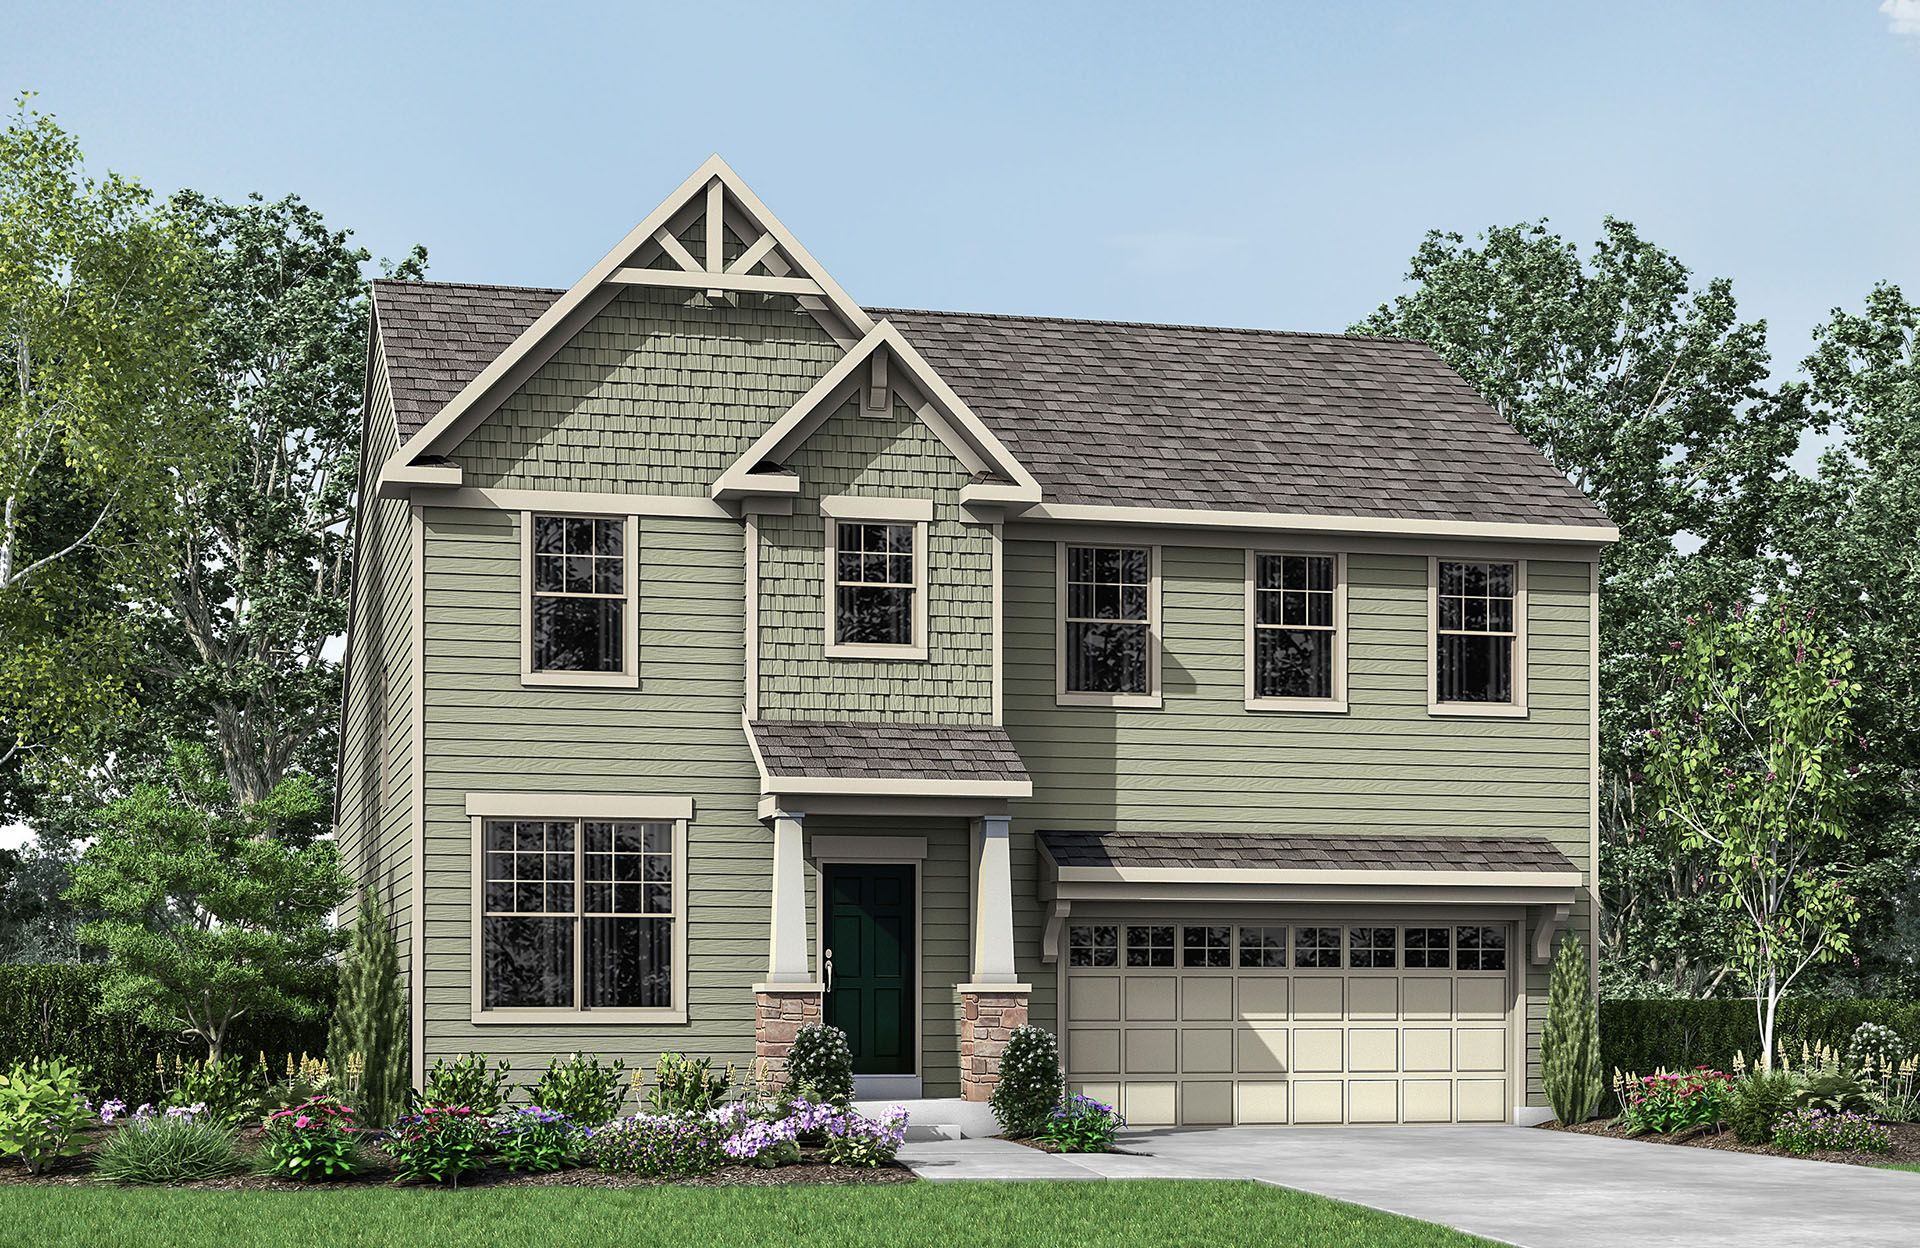 Single Family for Active at Glad Hill Estates - Maddox 3600 Donna Court Monrovia, Maryland 21770 United States